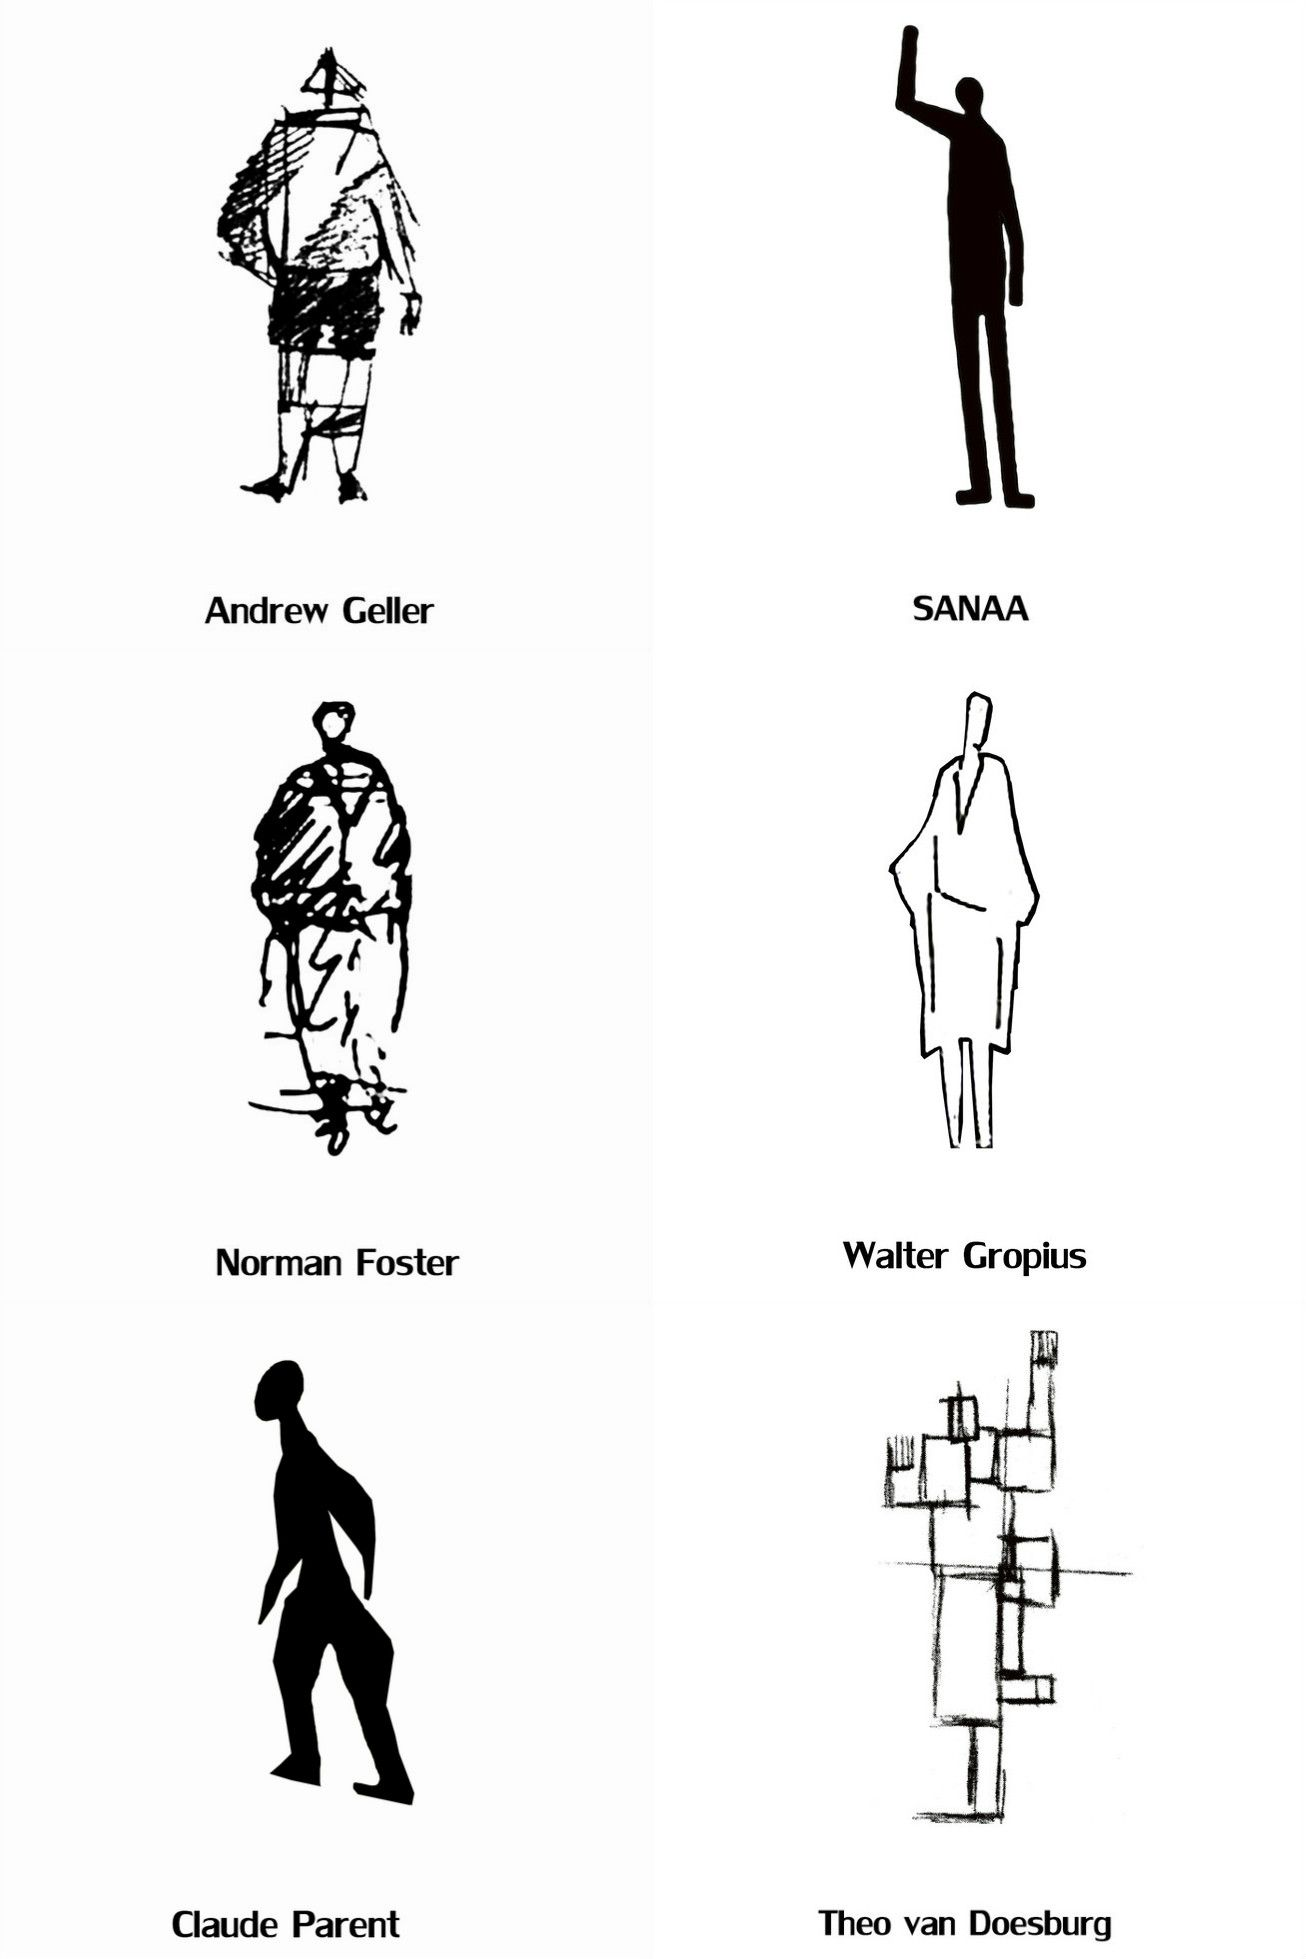 These Architects Drawings Of Human Figures Offer An Insight Into